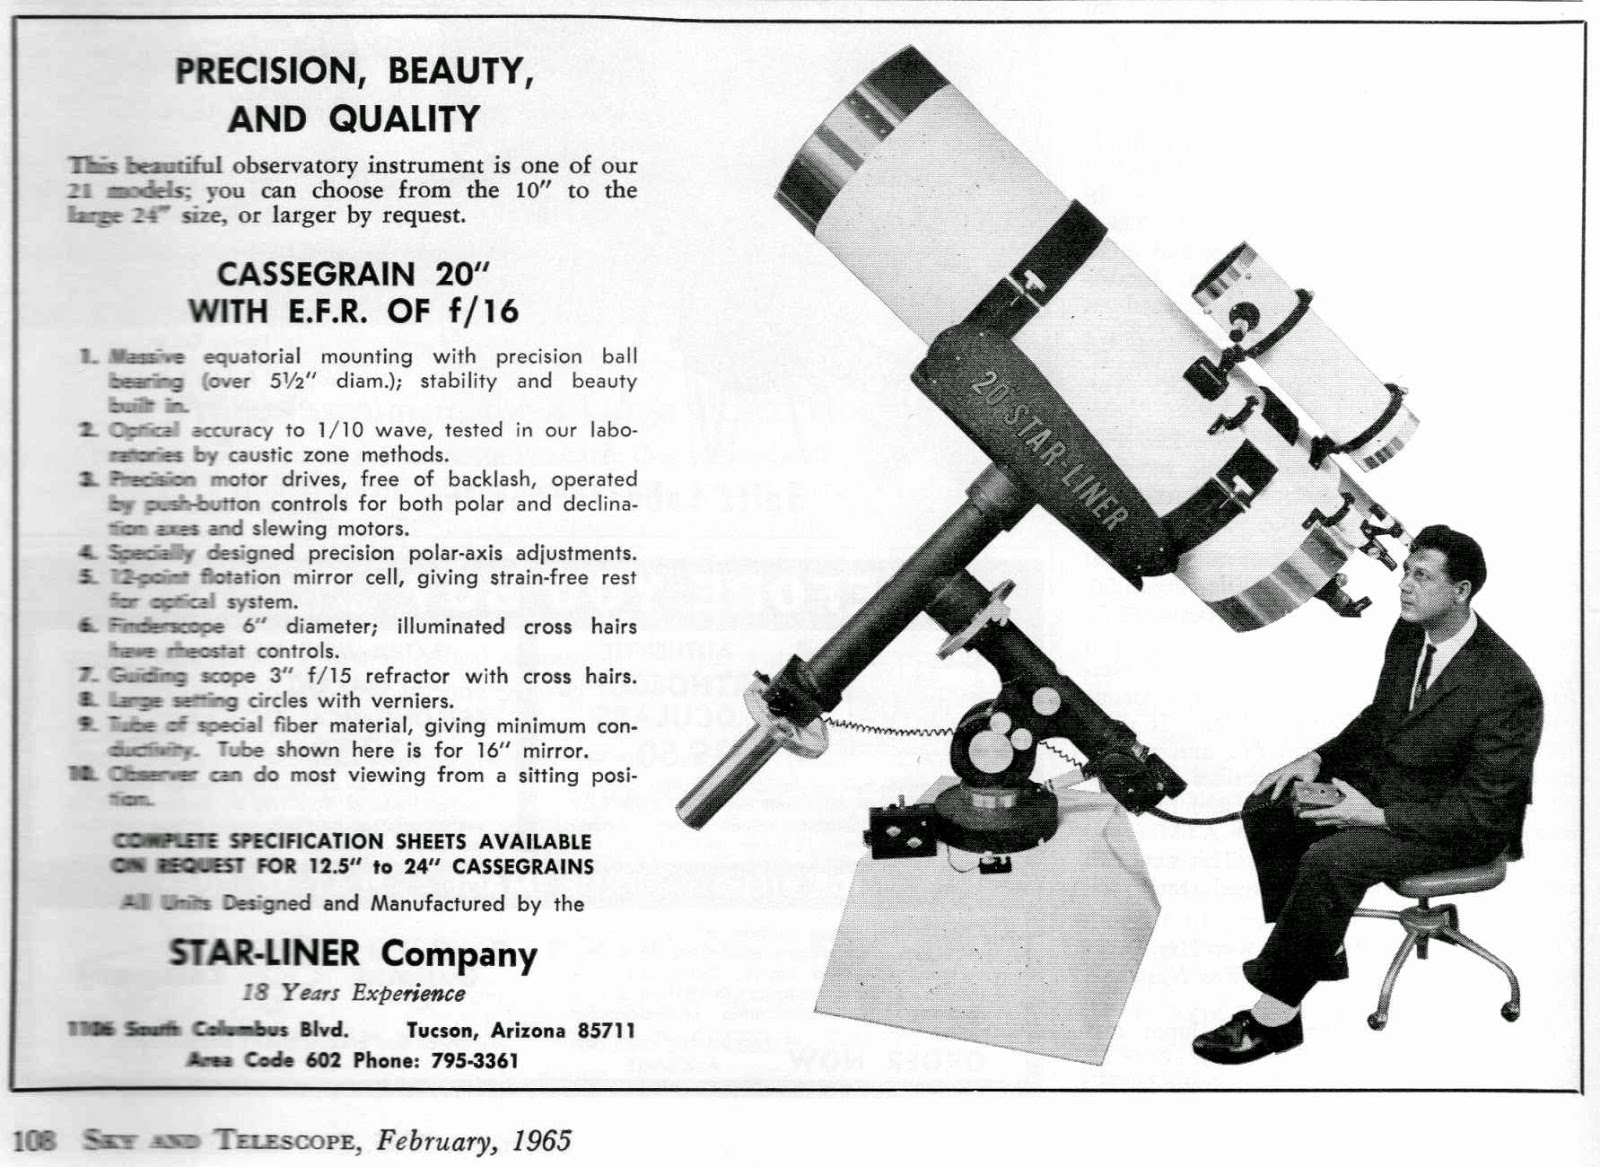 Astronomy Ad of the Day: FEBRUARY, 1965 (Sky & Telescope)